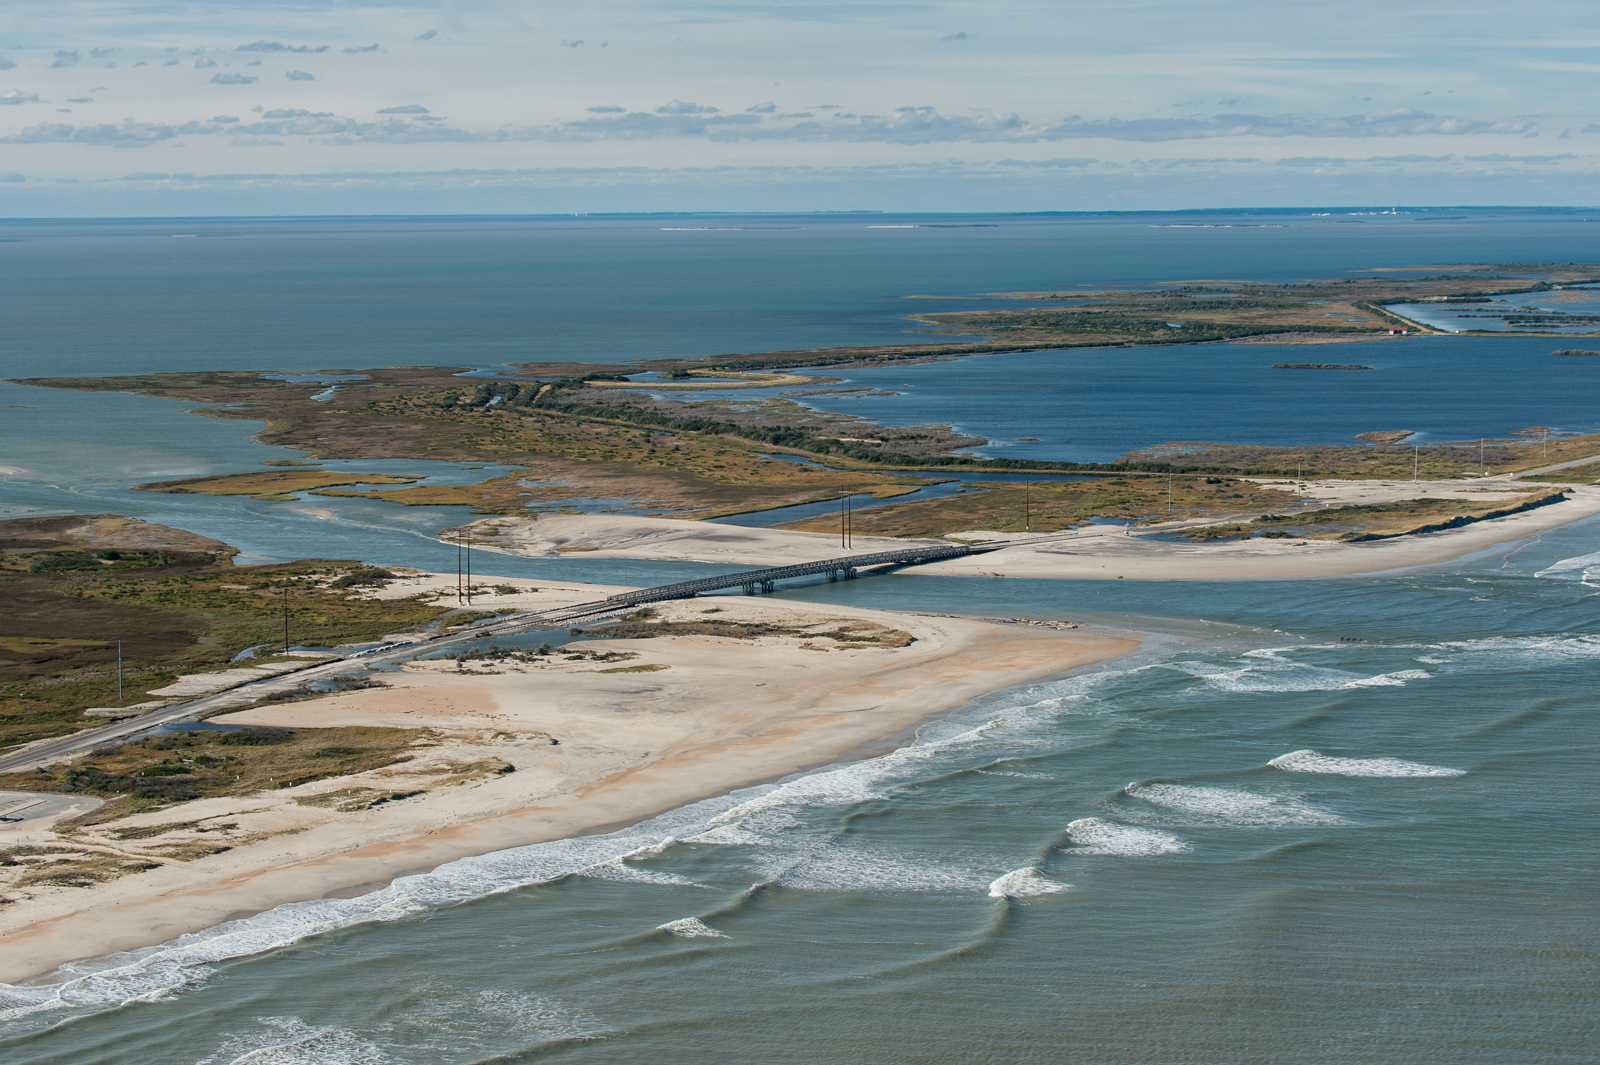 The New Inlet, between the Tri-Villages and Pea Island, cut off Rodanthe from the mainland after Hurricane Irene in 2011. Since, a temporary bridge has been installed. It's pictured here after Hurricane Sandy in 2012.